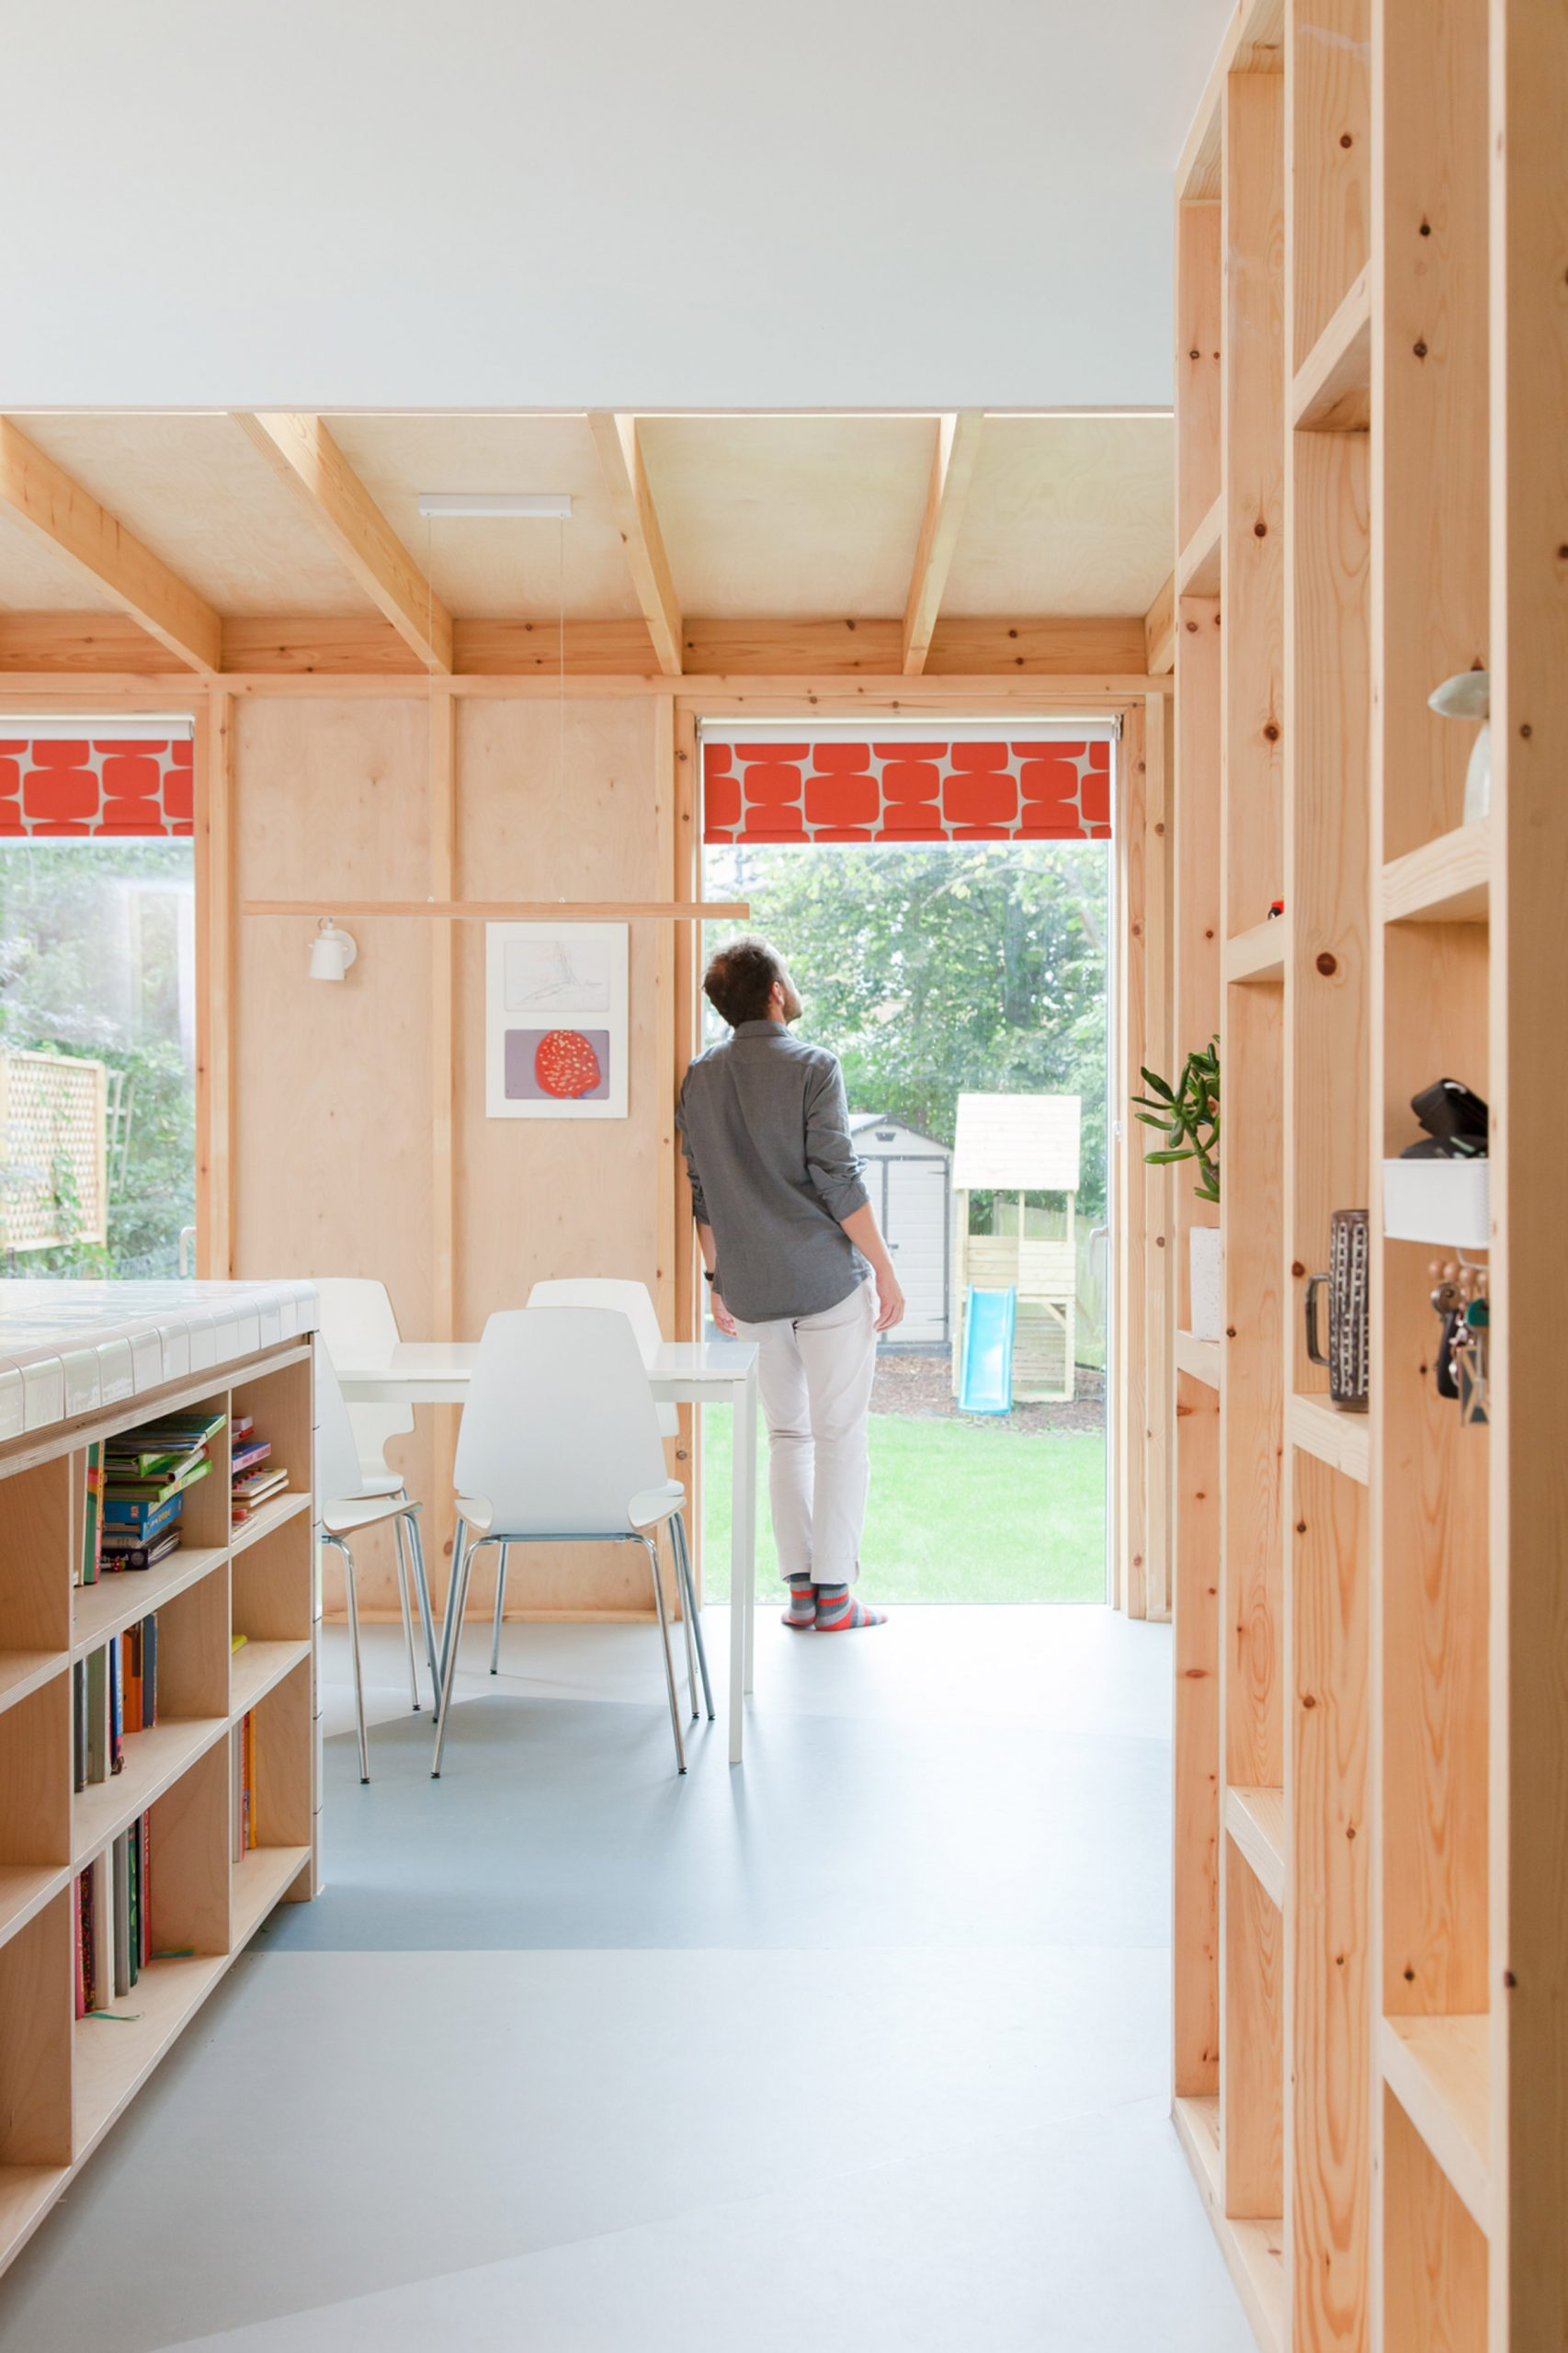 A kitchen with an exposed wooden structure